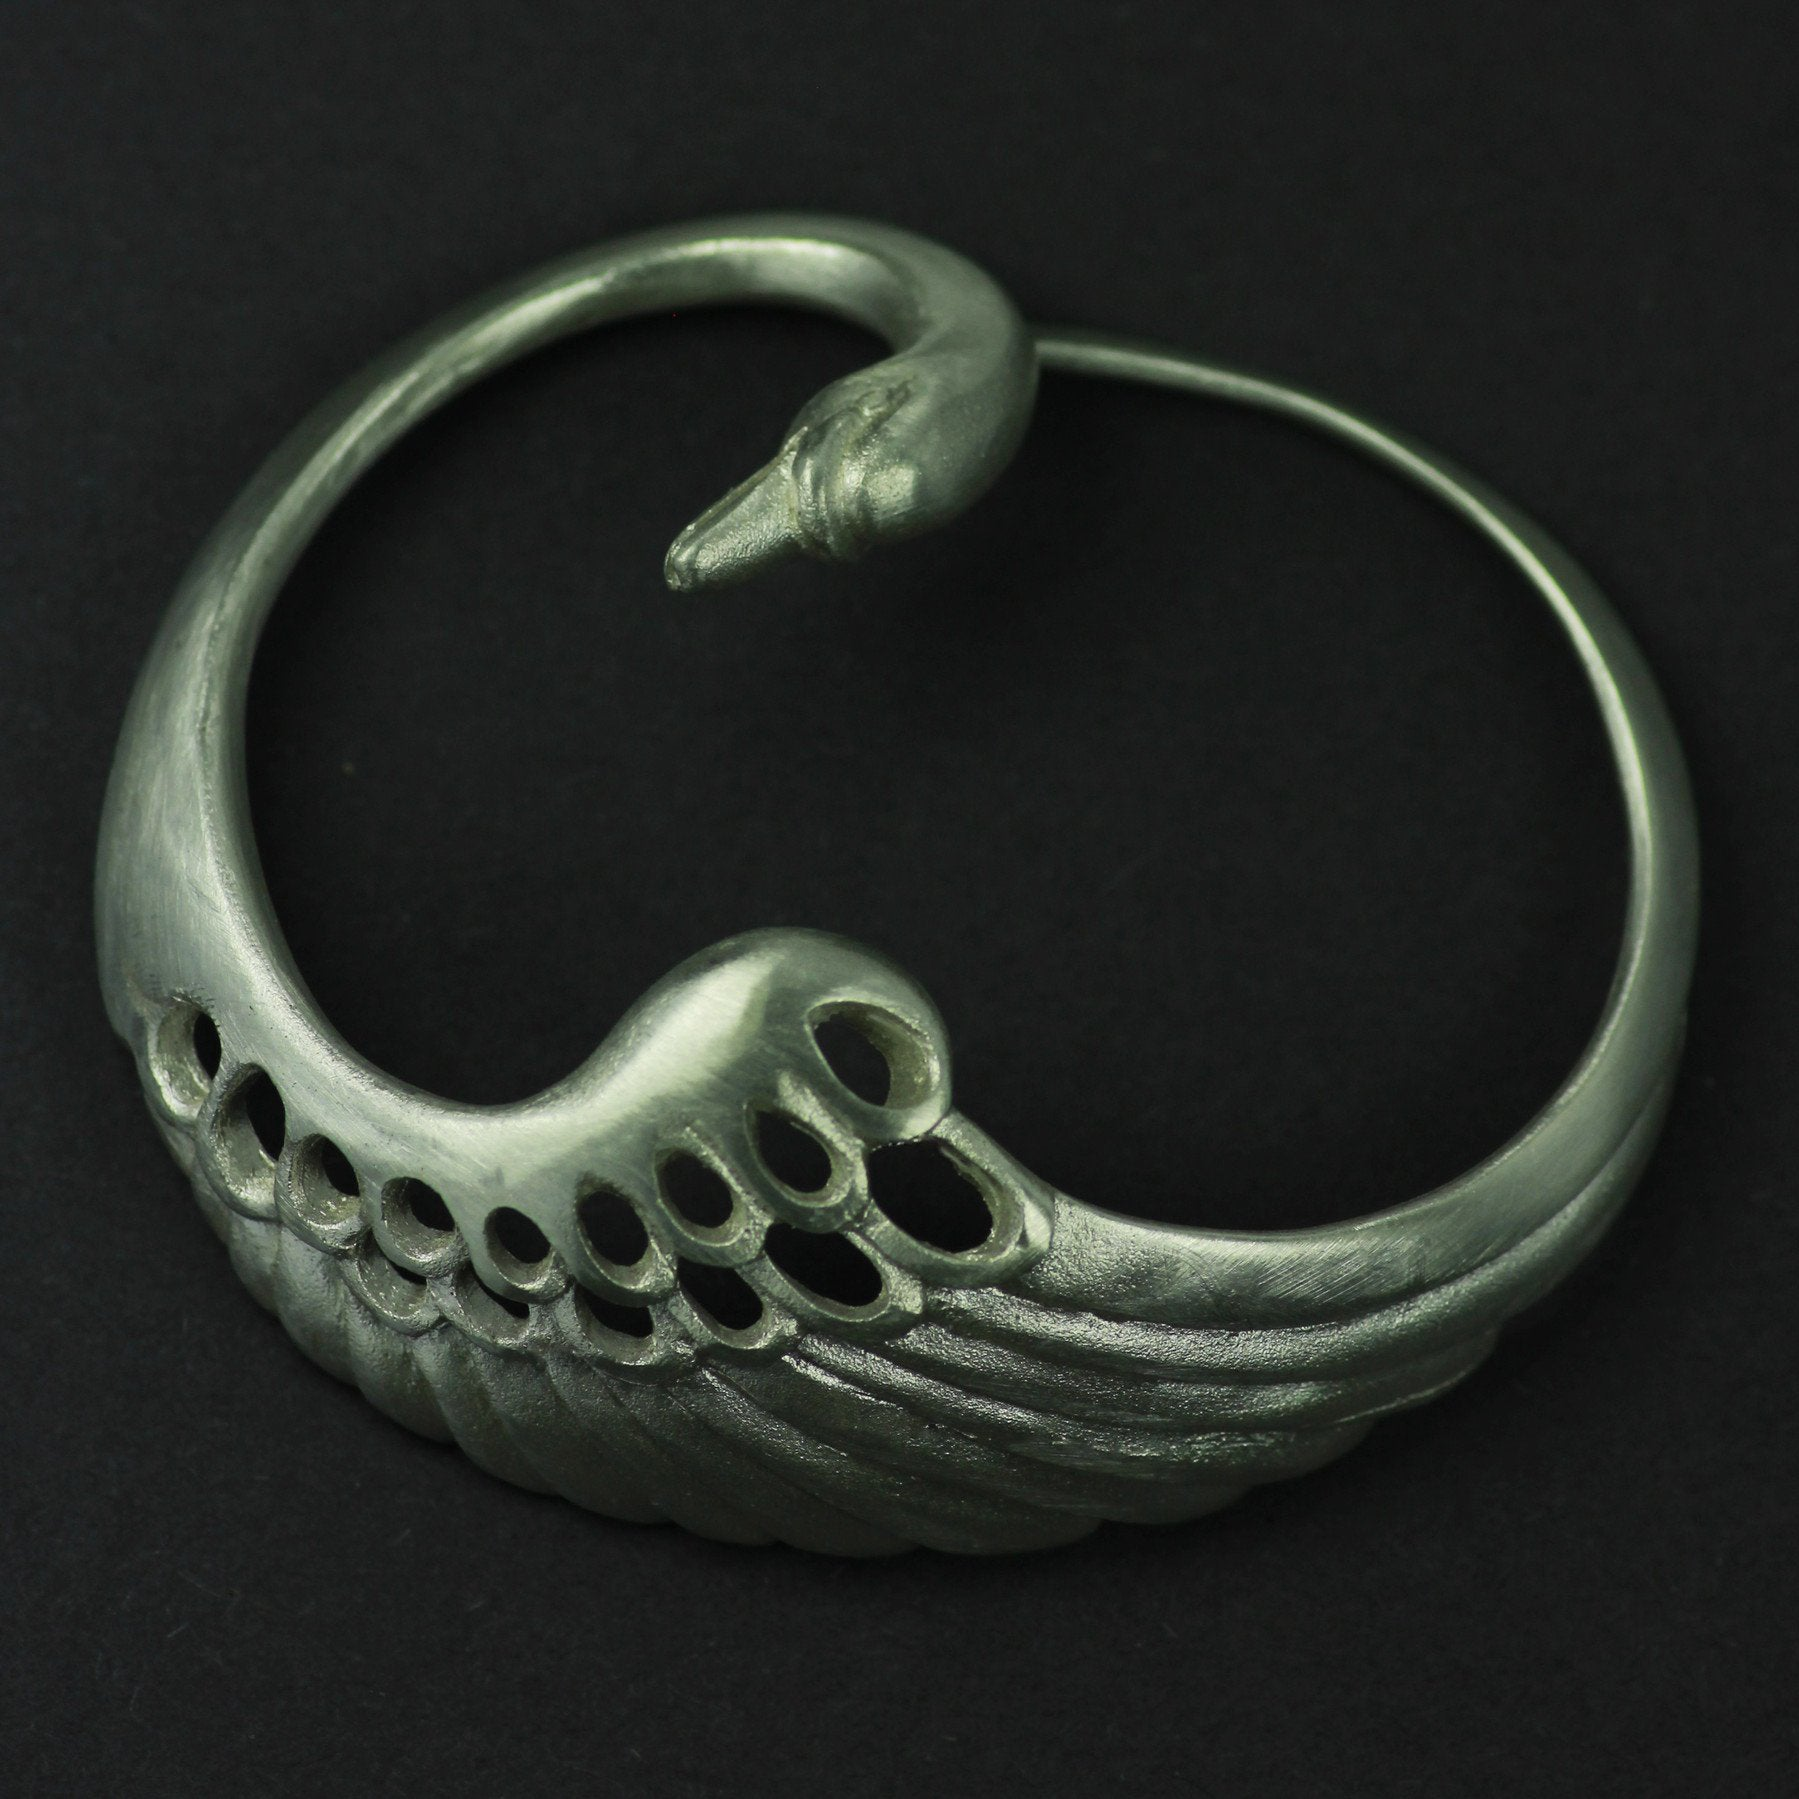 Swan Brooch made from Sterling Silver. This jewelry is also available as a pendant!